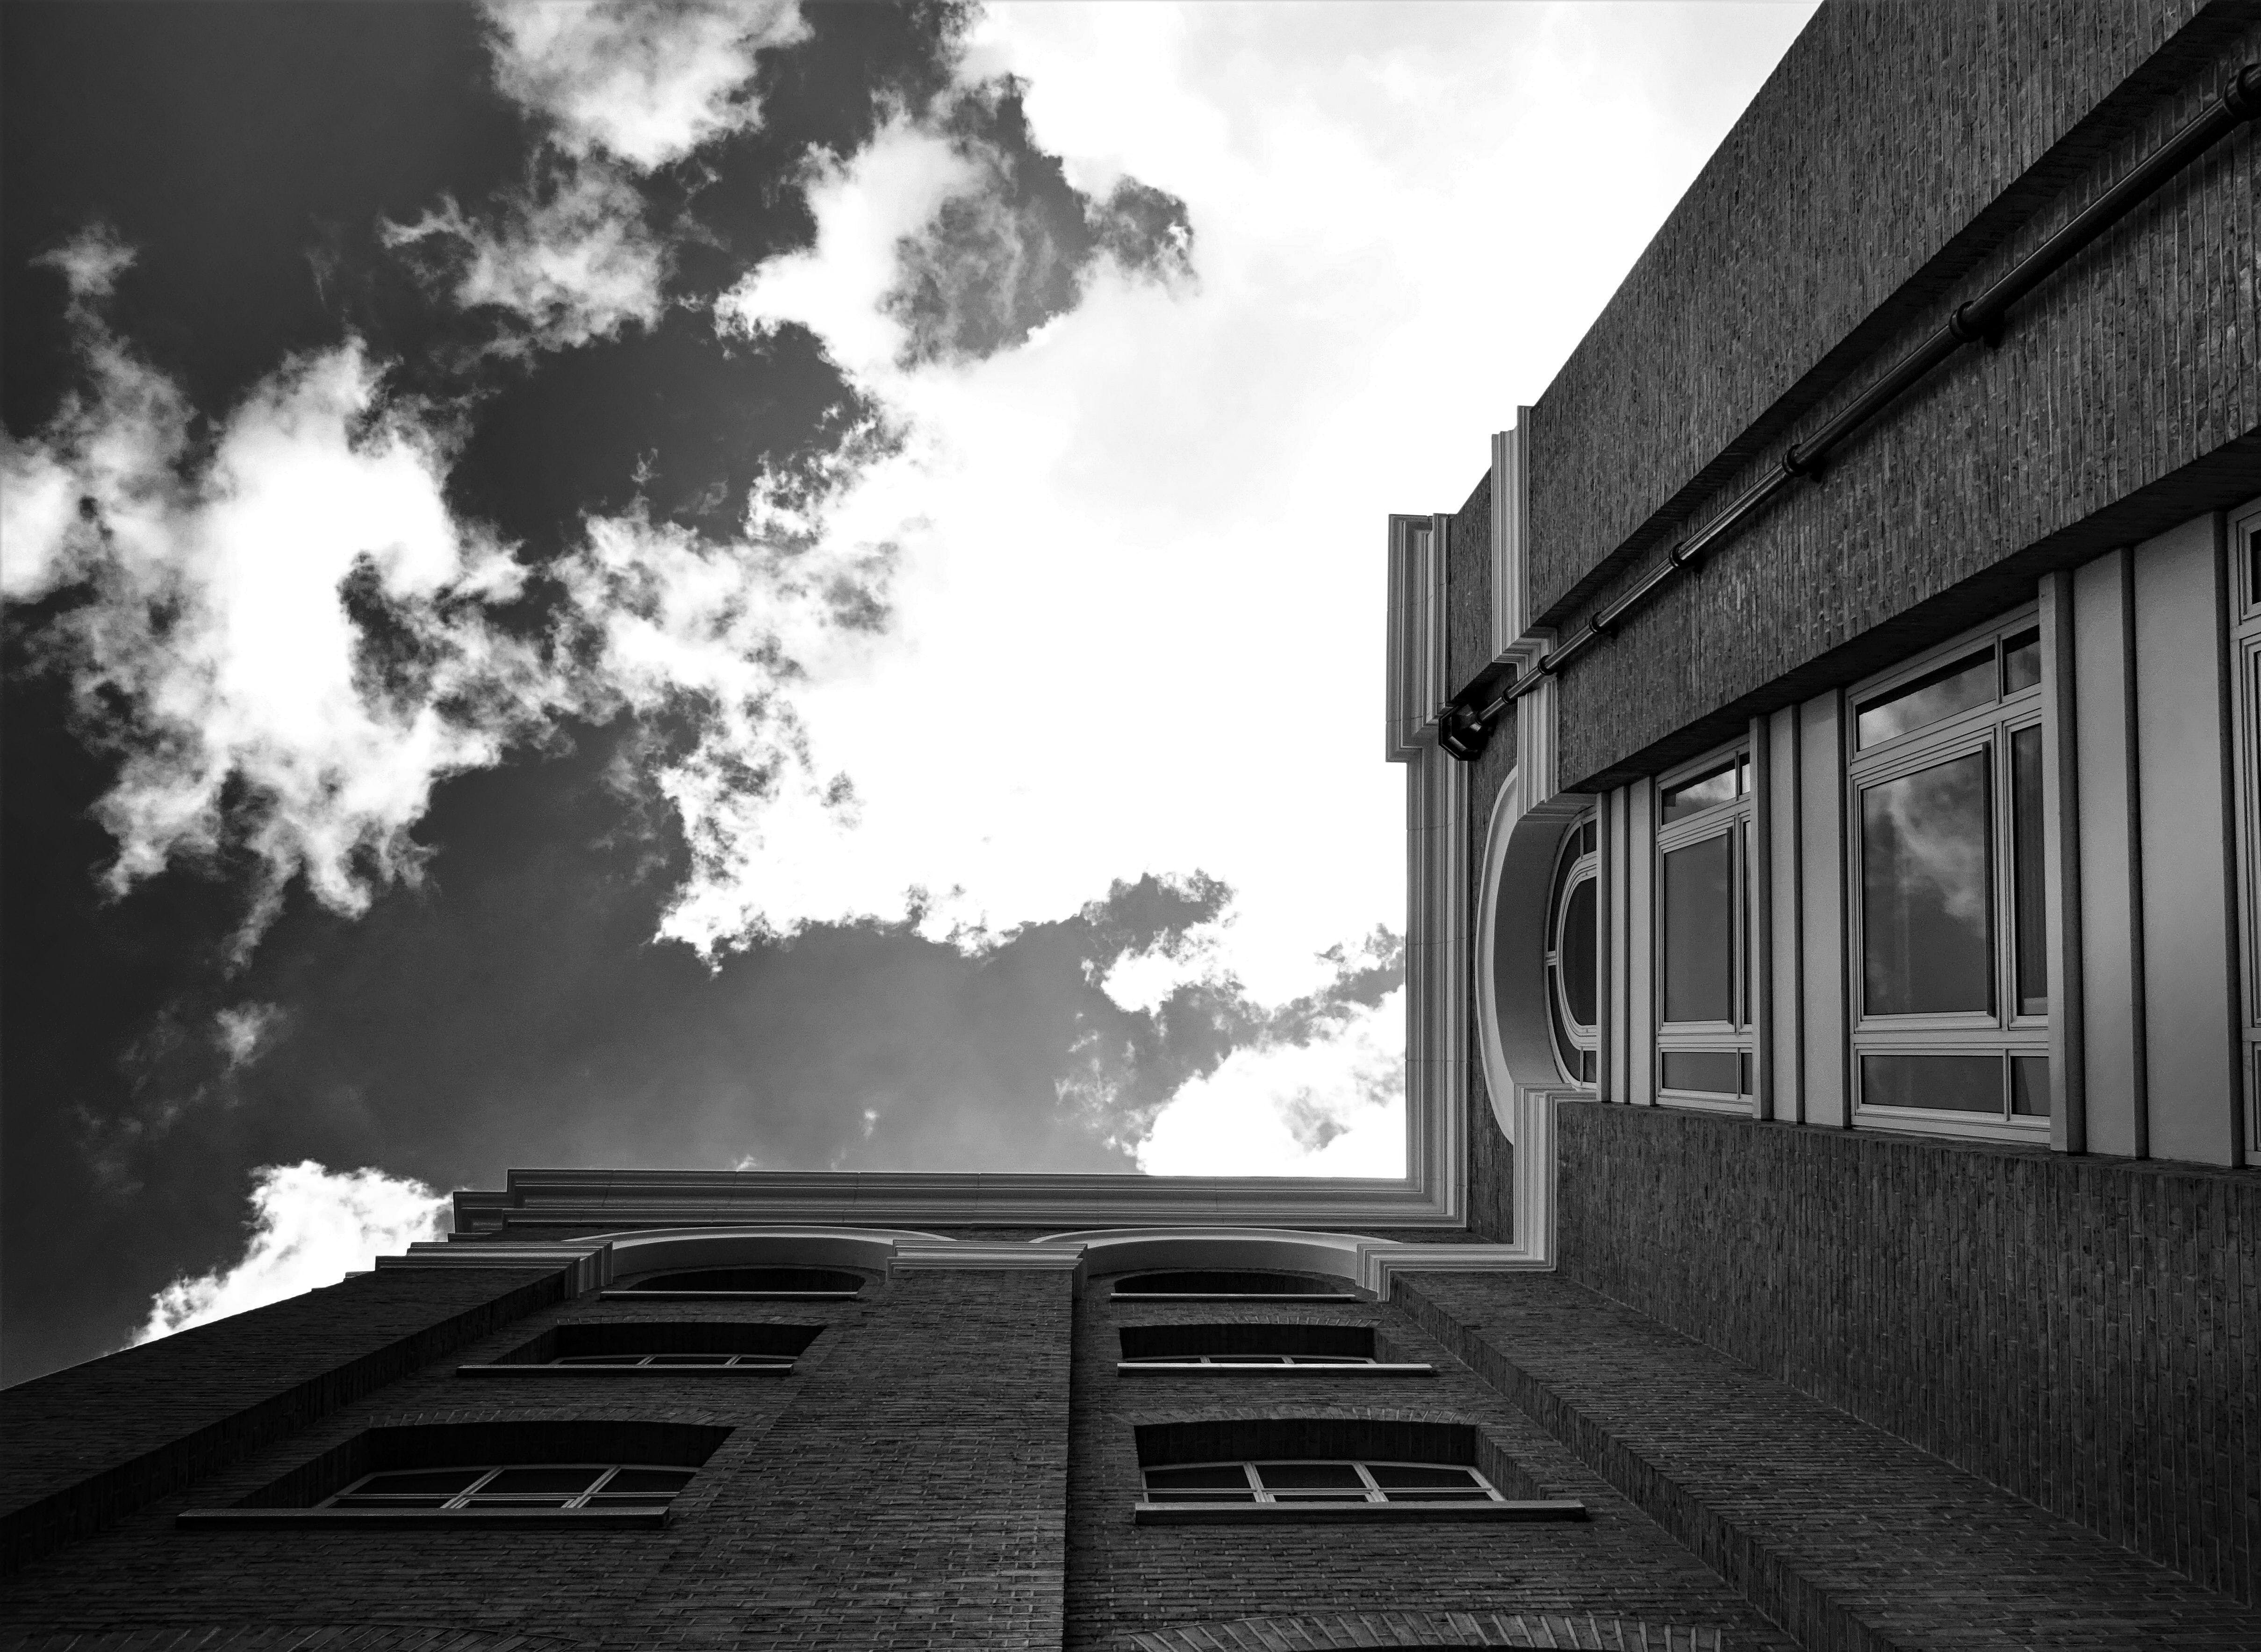 Grayscale Photography of Low Angle Building